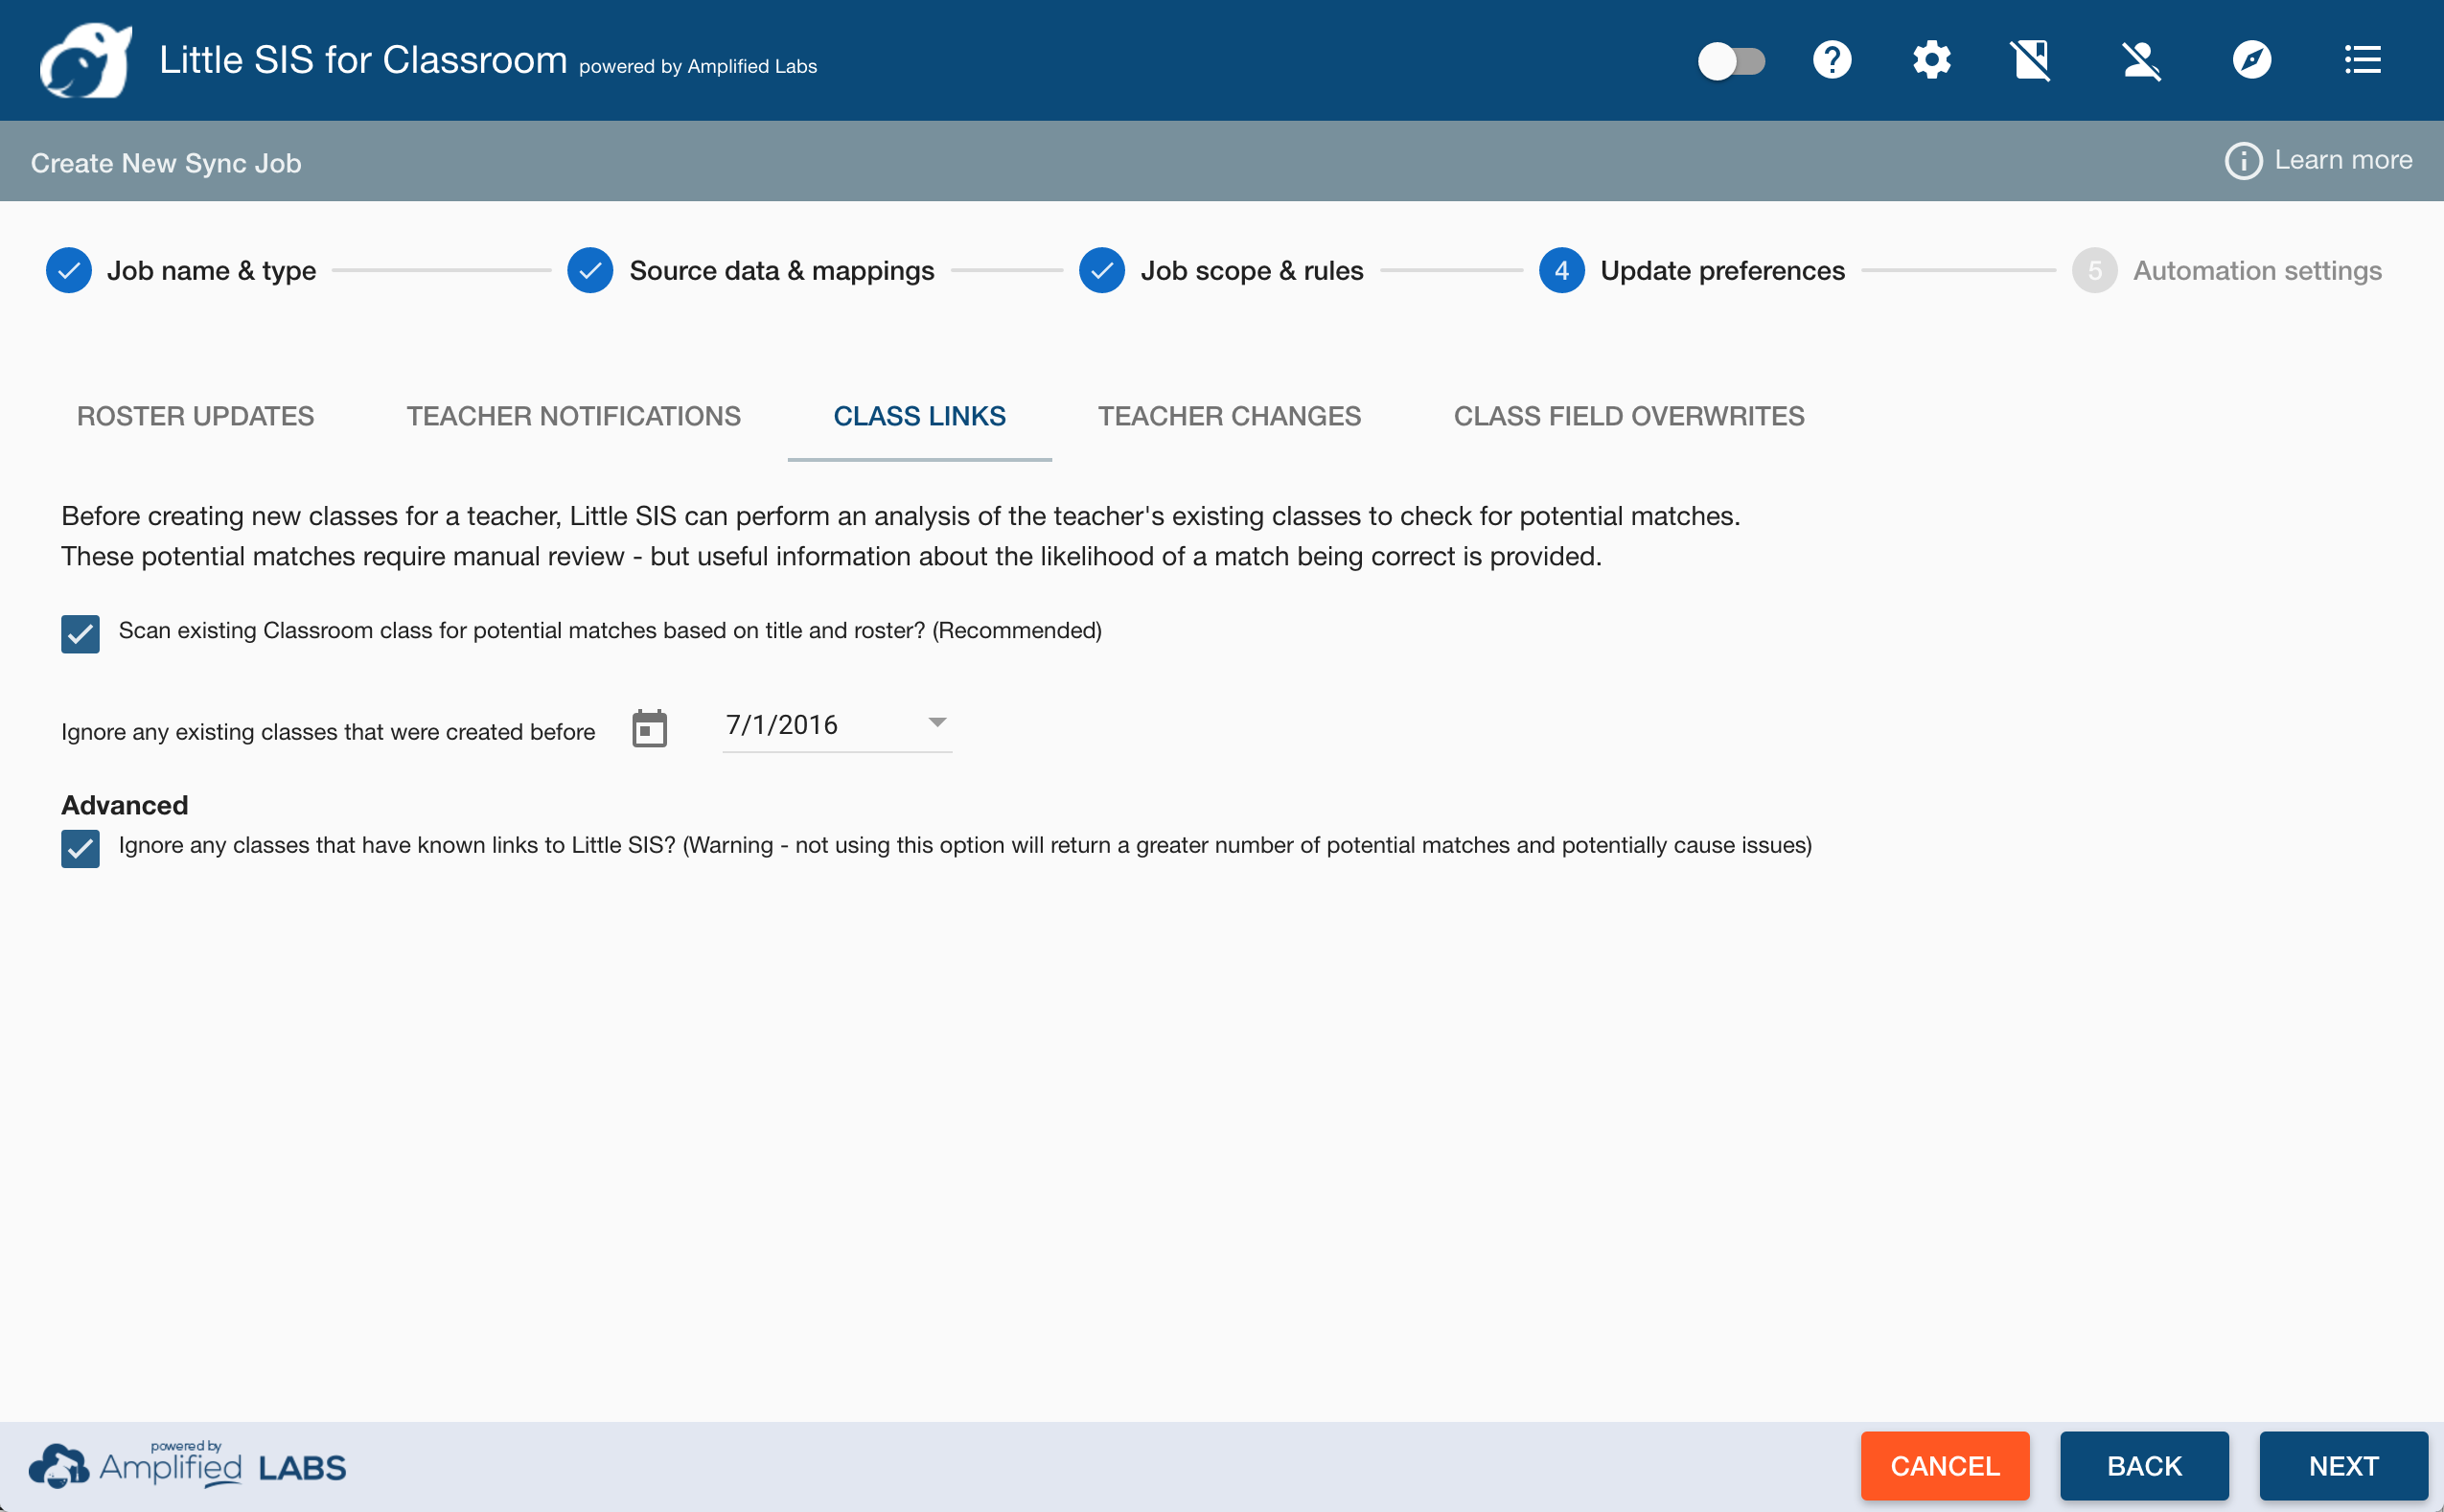 Setting up a sync job - step by step – Help Center